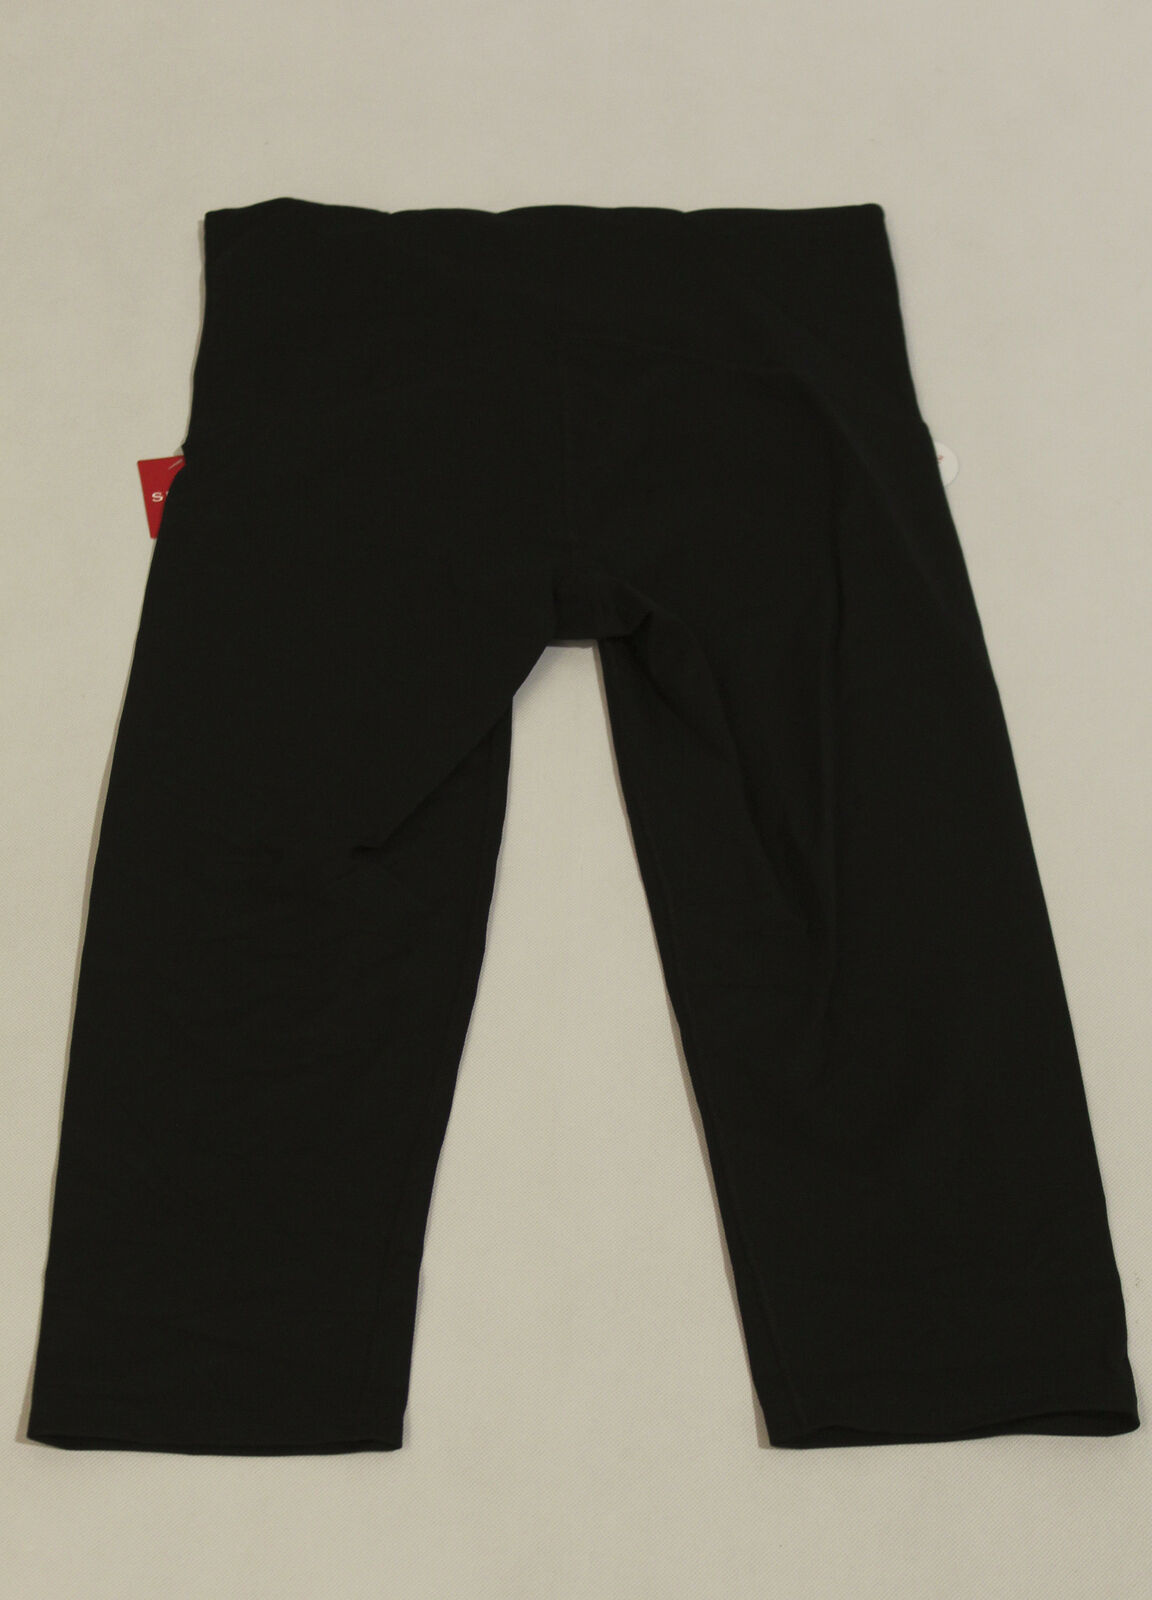 SPANX Women's Active Cropped Leggings SV3 Black Size XL NWT